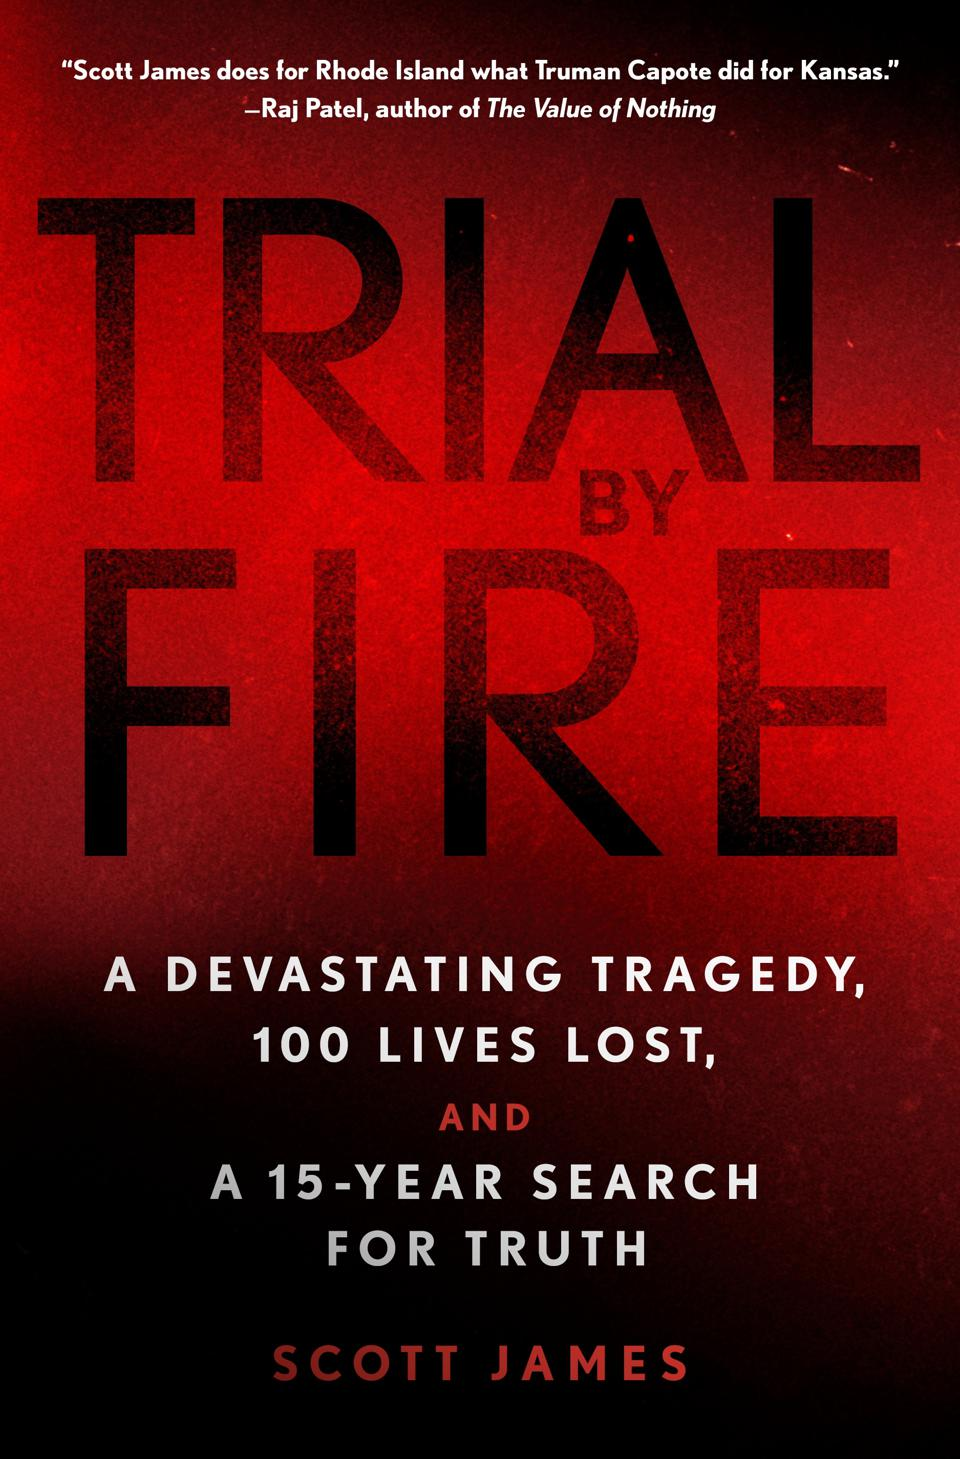 Cover of 'Trial by Fire' by Scott James.